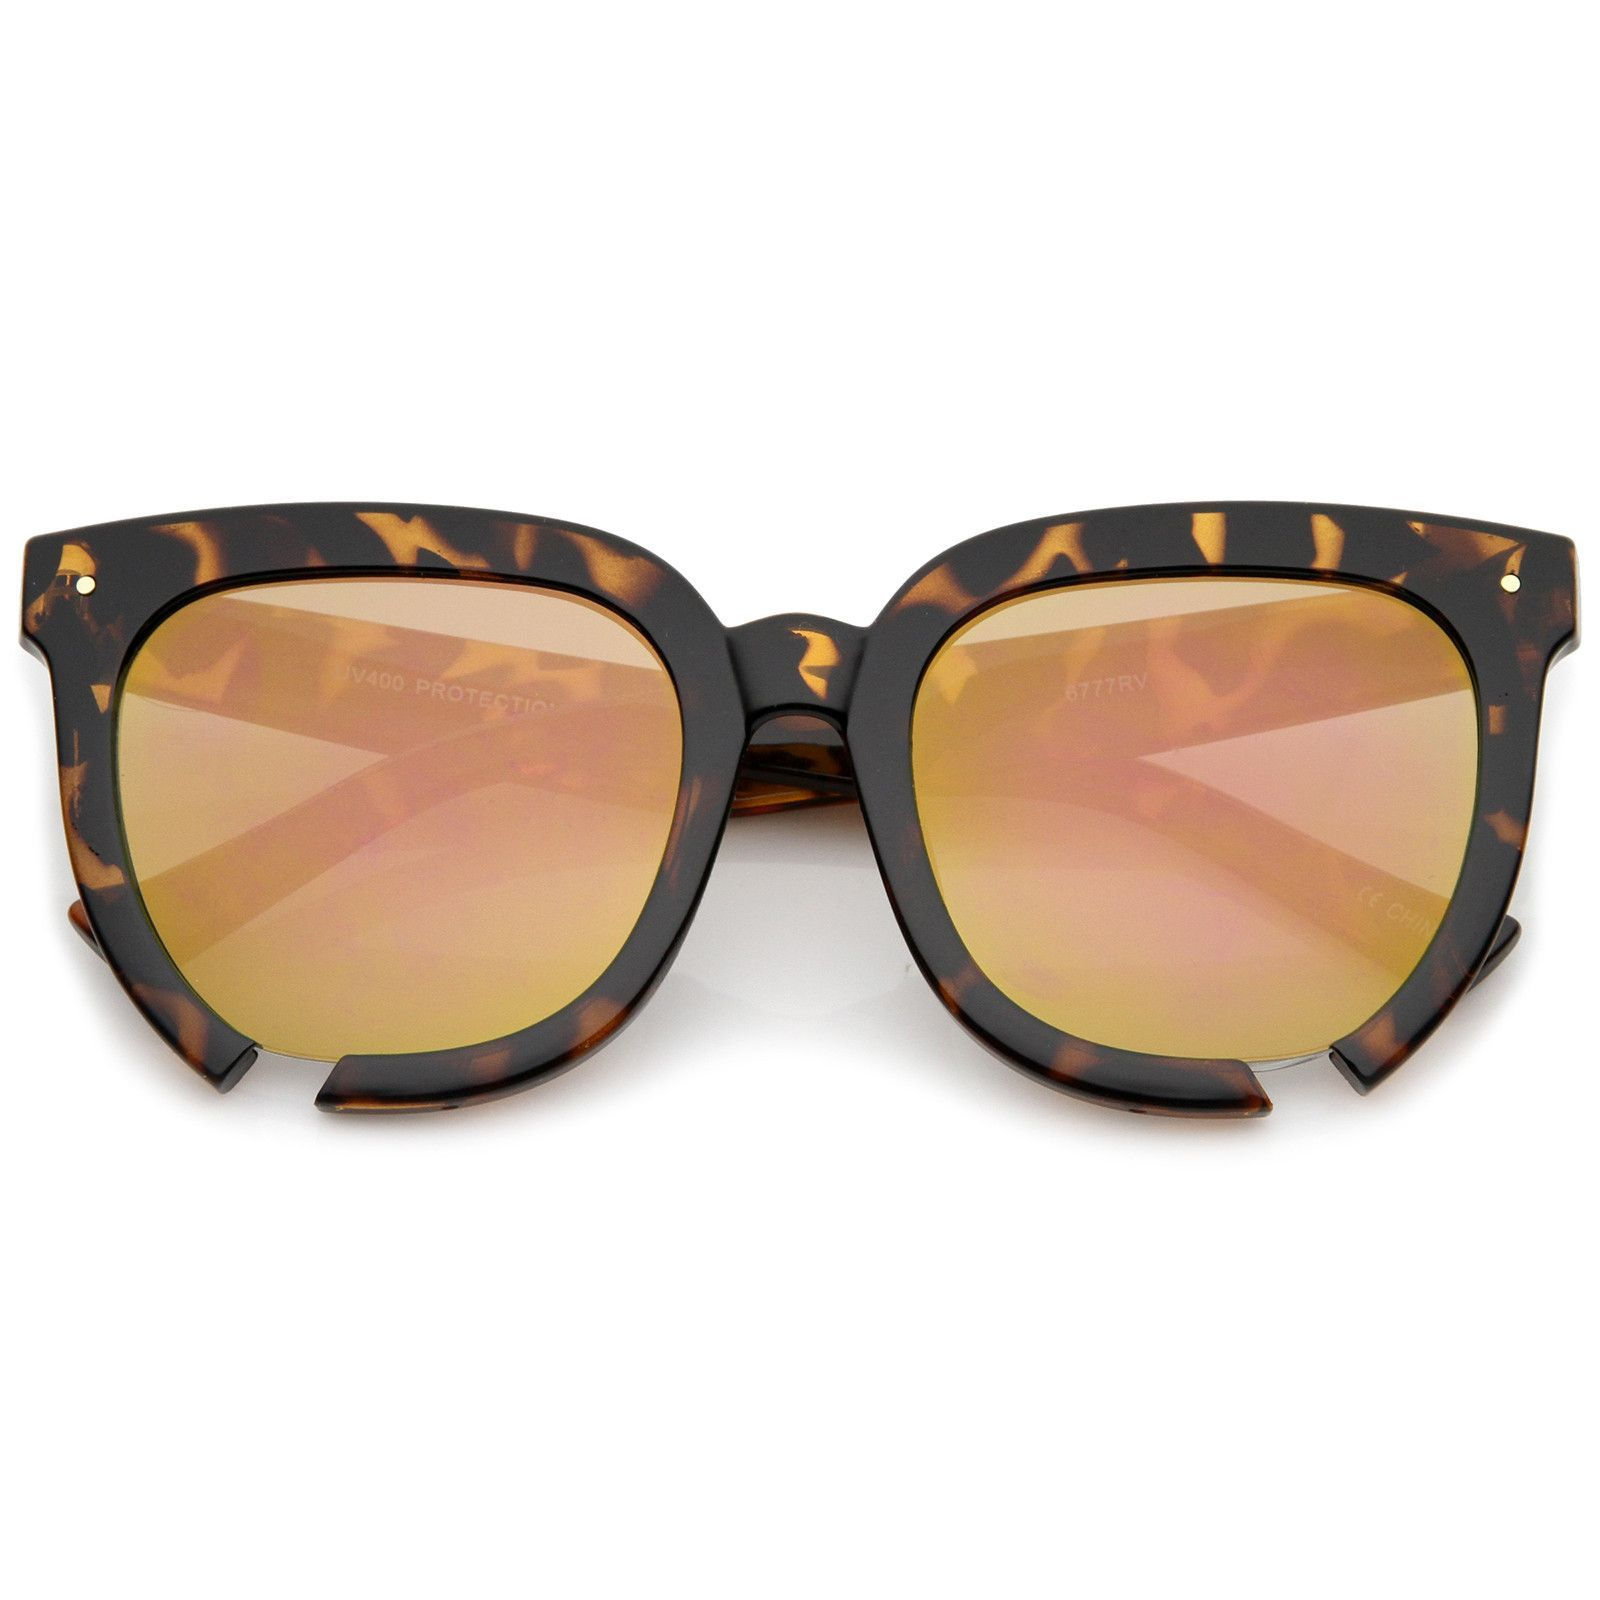 5a3b8bd1c23b6 Oversize Notch Detail Square Colored Mirror Flat Lens Horn Rimmed Sunglasses  54mm  frame  sunglass  bold  sunglasses  sunglassla  oversized  mirrored ...